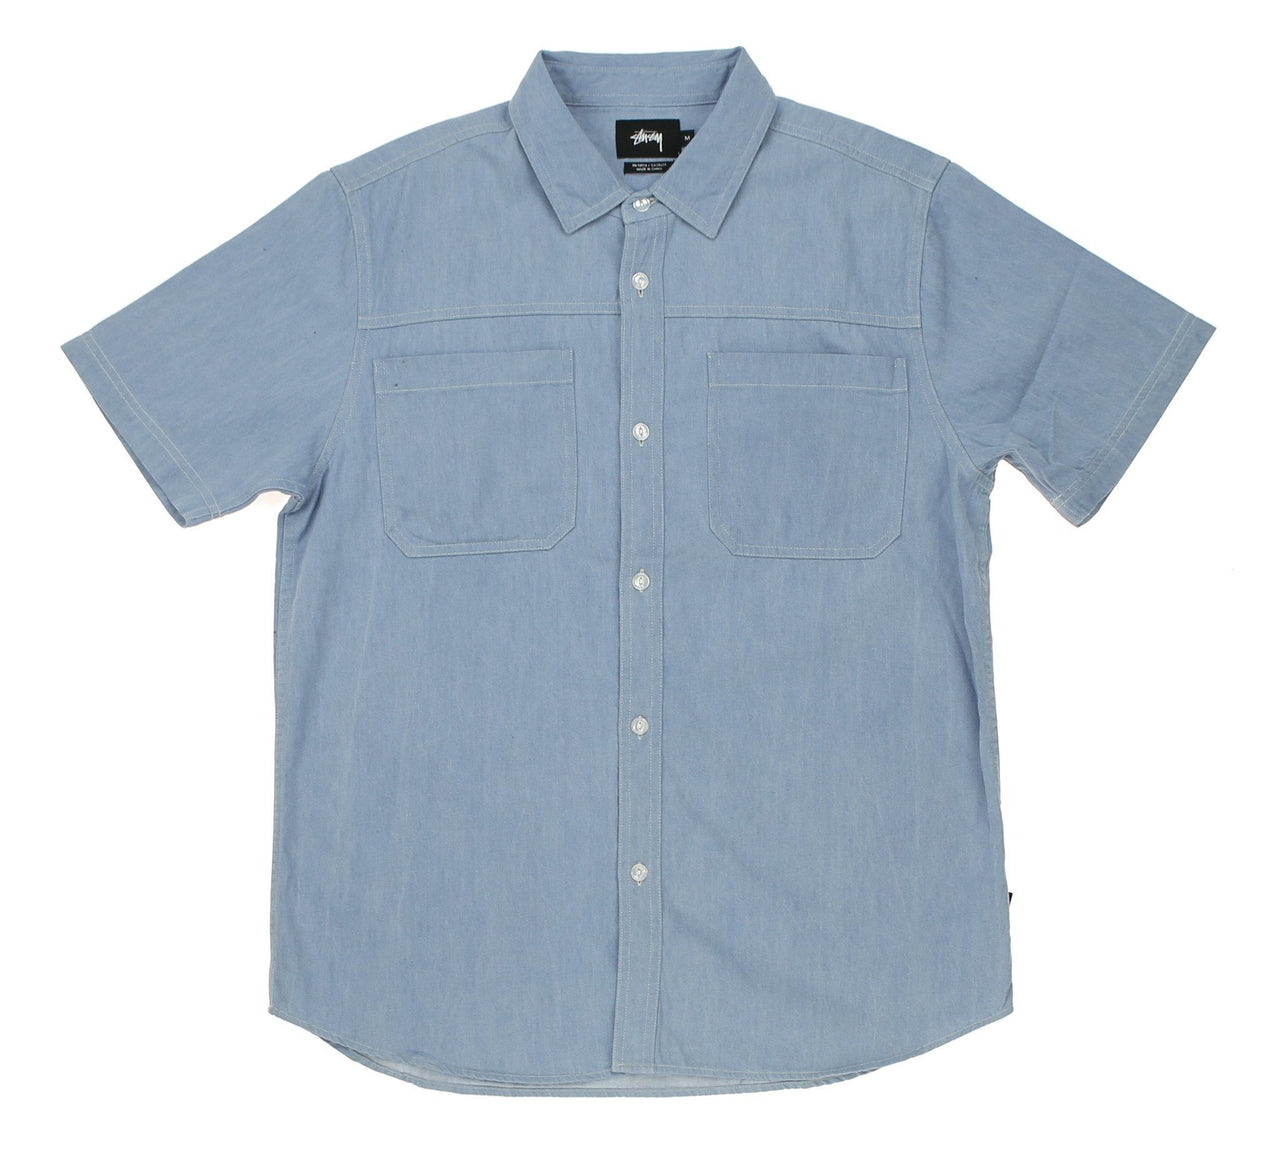 BIG POCKET DENIM SHIRT